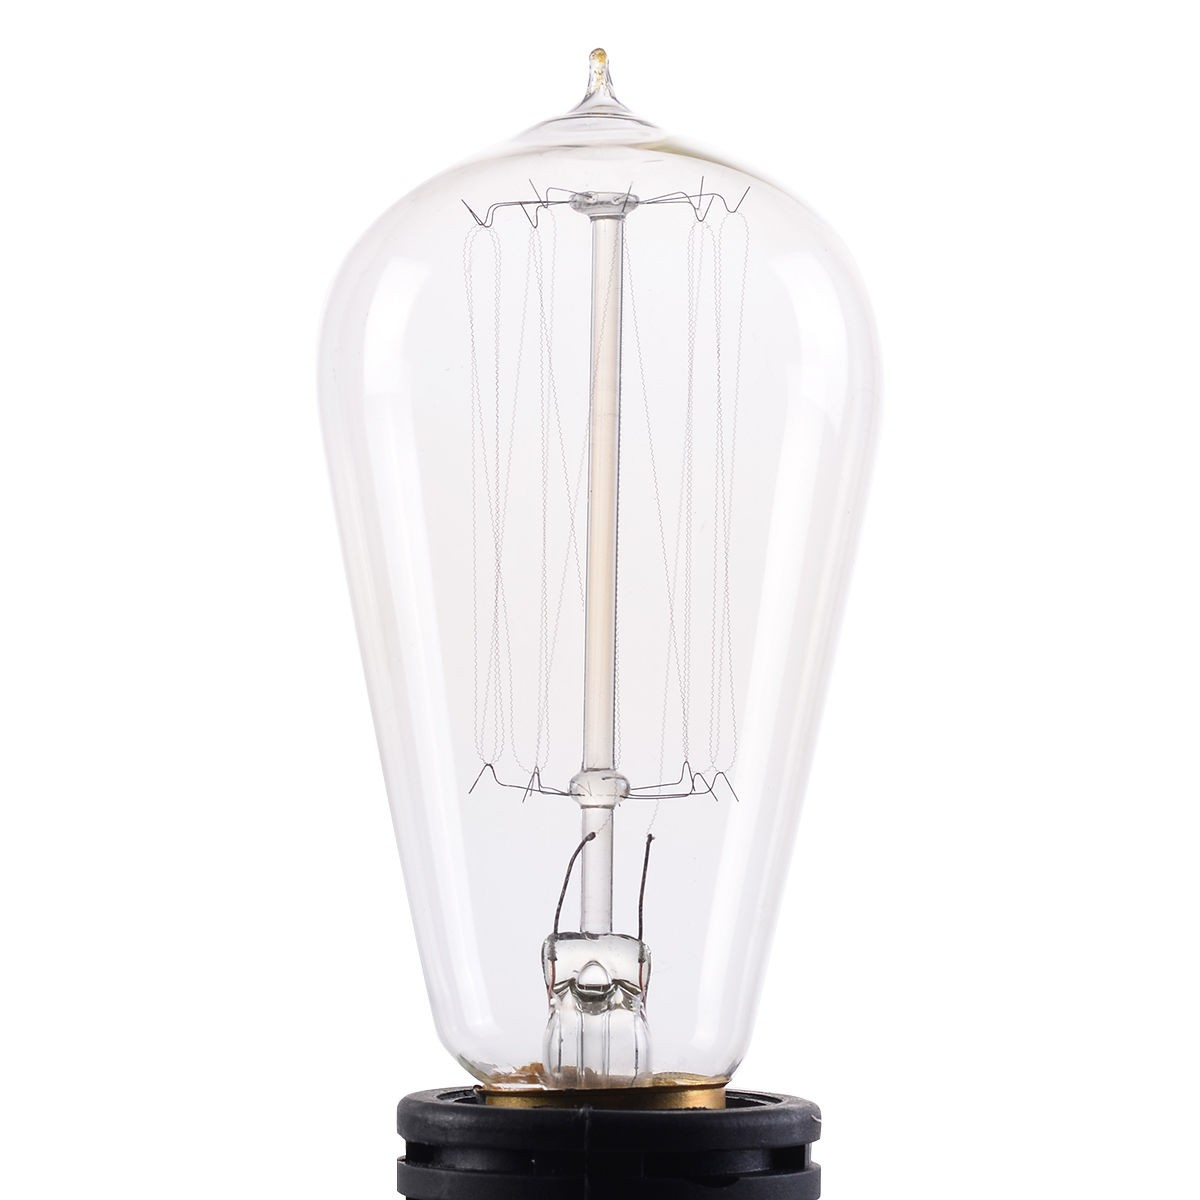 4 pcs 110v 60w squirrel cage filament light bulb vintage. Black Bedroom Furniture Sets. Home Design Ideas